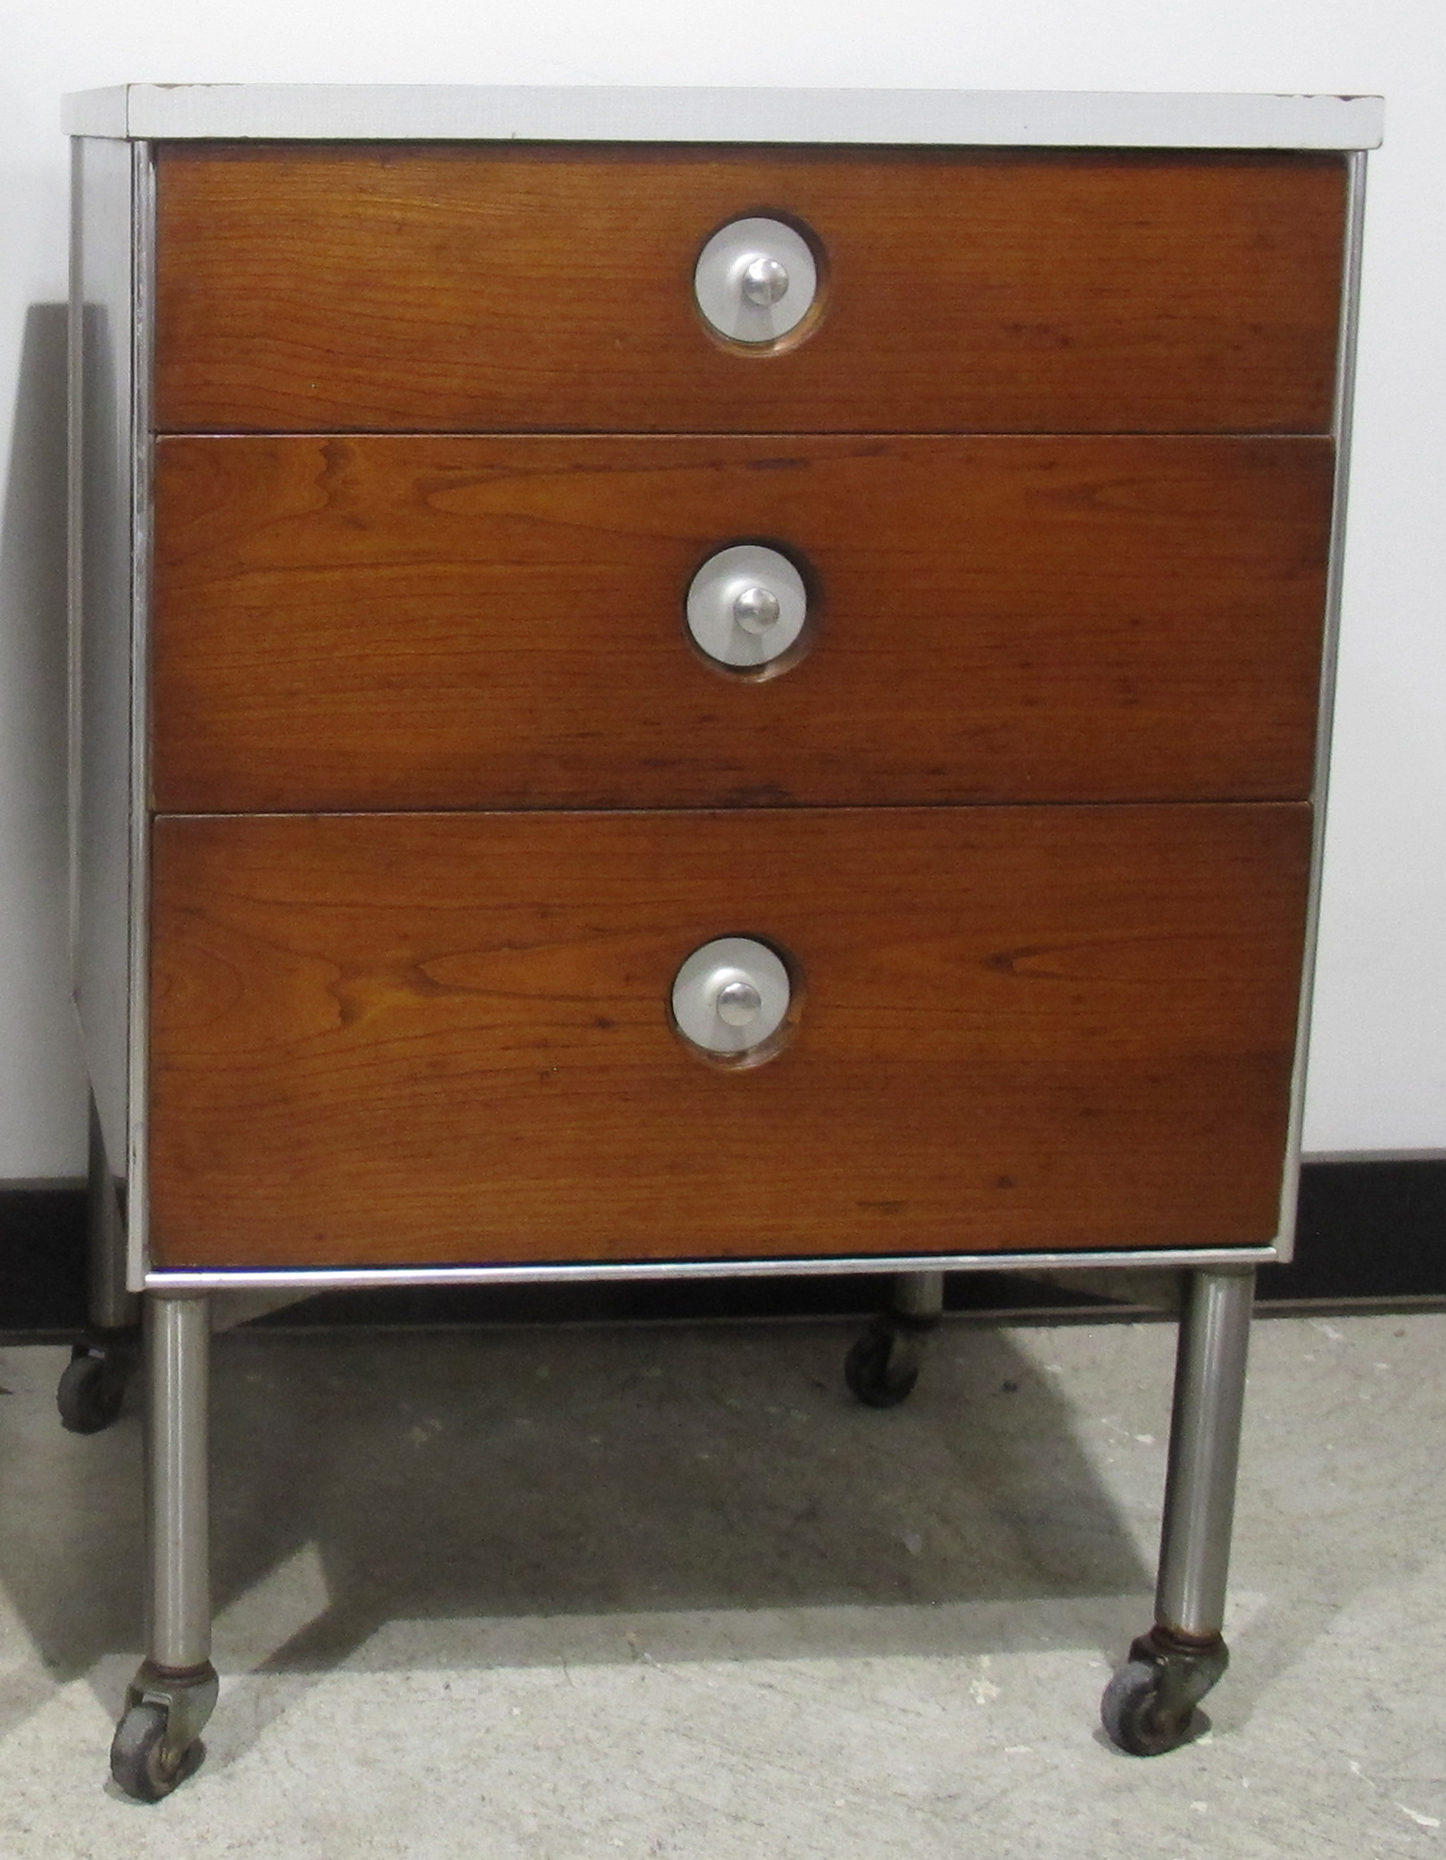 RAYMOND LOEWY THREE DRAWER ROLLING CABINET BY HILL-ROM